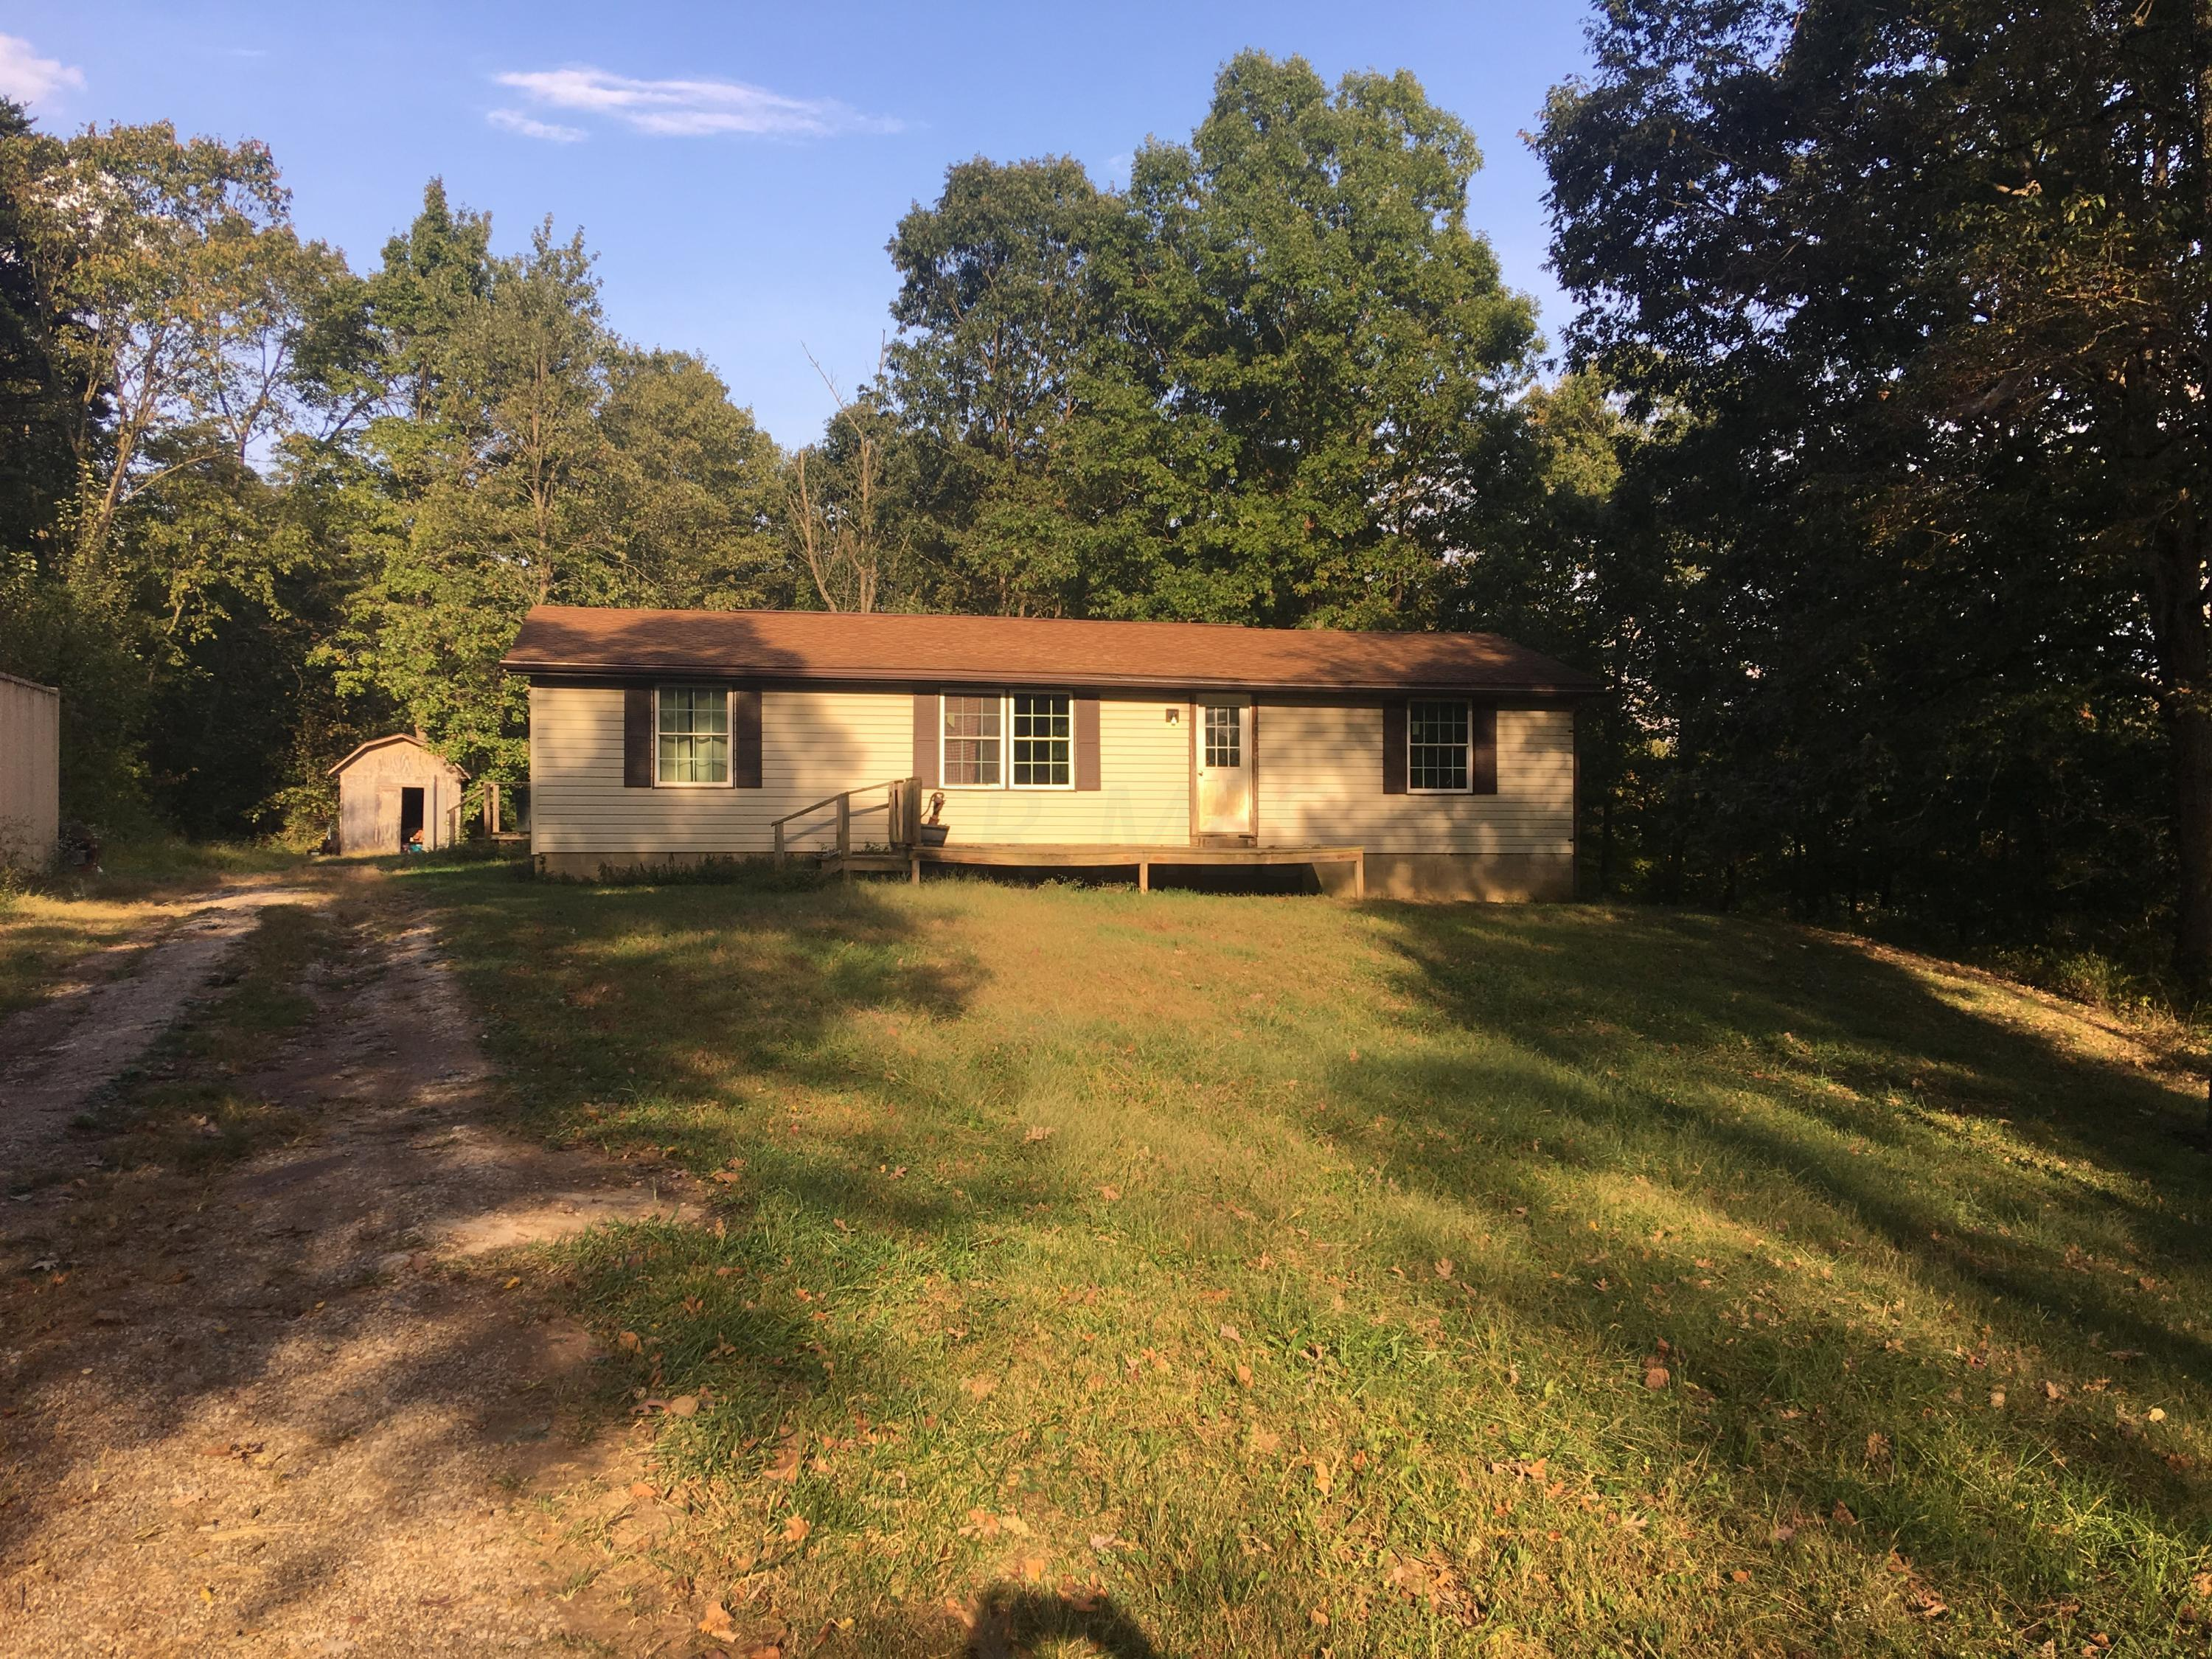 3760 Perry Ridge, Nelsonville, Ohio 45764, 3 Bedrooms Bedrooms, ,2 BathroomsBathrooms,Residential,For Sale,Perry,219036961